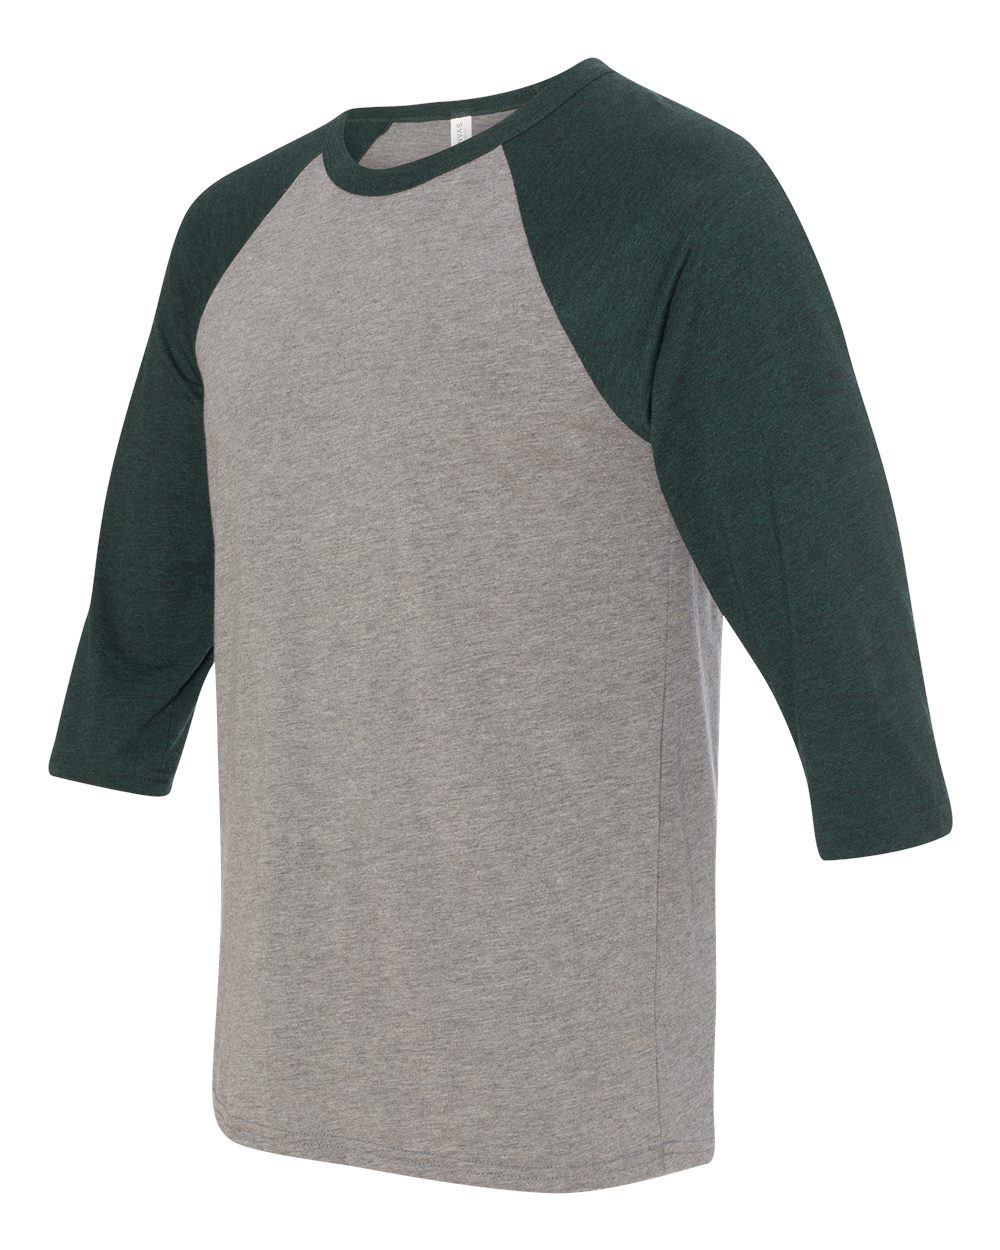 click to view Grey/Emerald Triblend